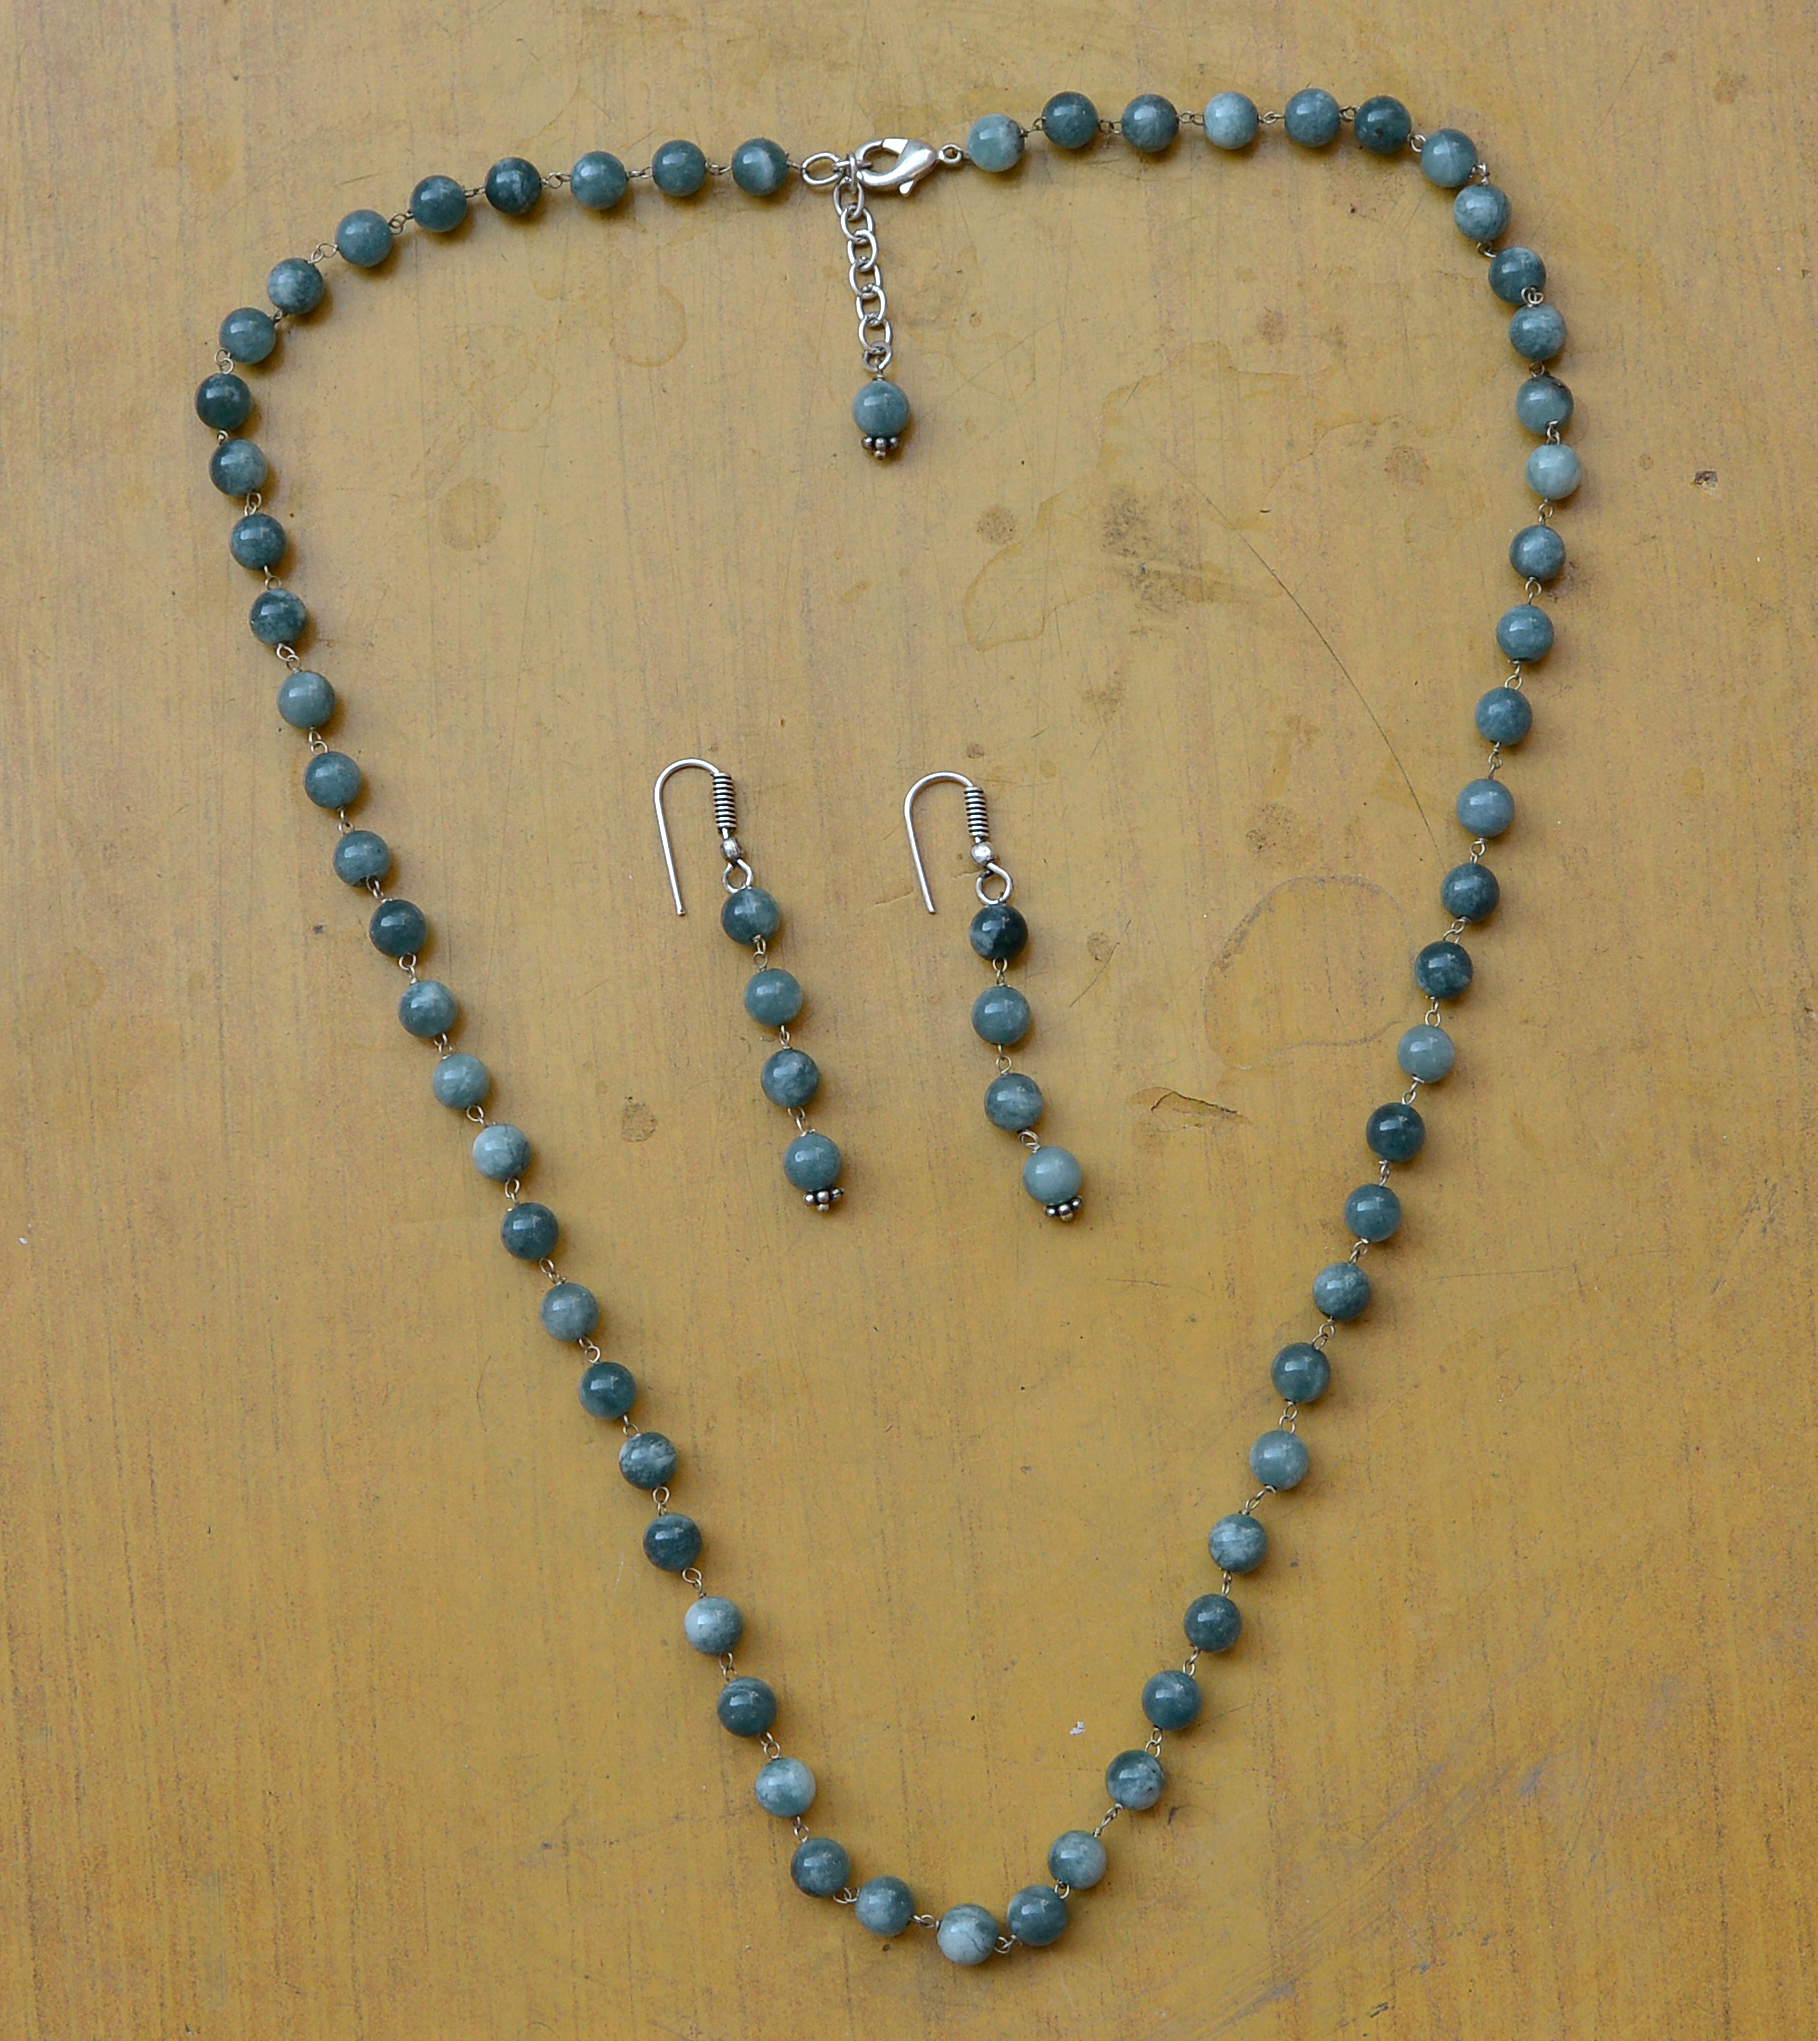 Dianite Blue Quartz Silver Necklace Set PG-156688